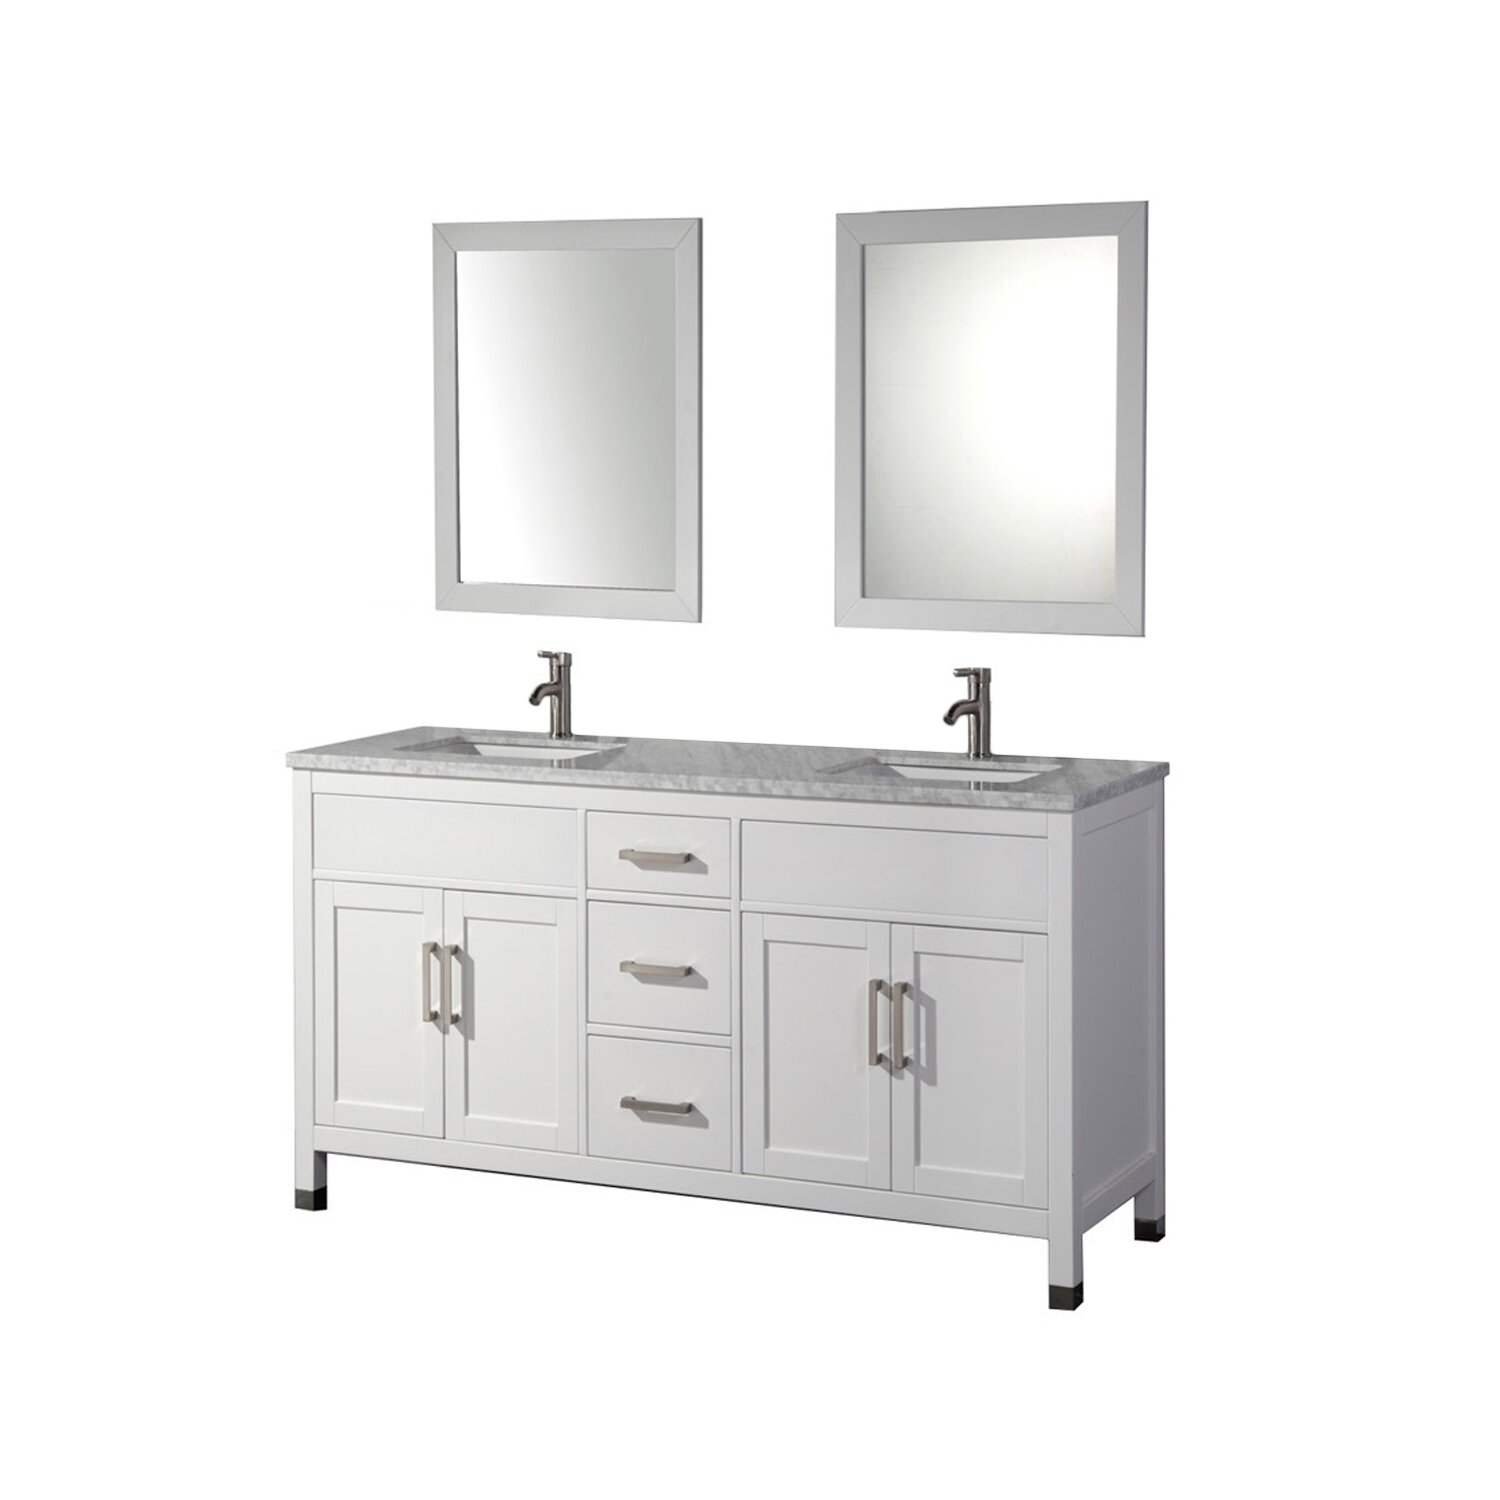 Bathroom Sink And Mirror : Mirror Mirrored Bathroom Vanity Sink Amazing Bathroom Vanity Mirrors ...